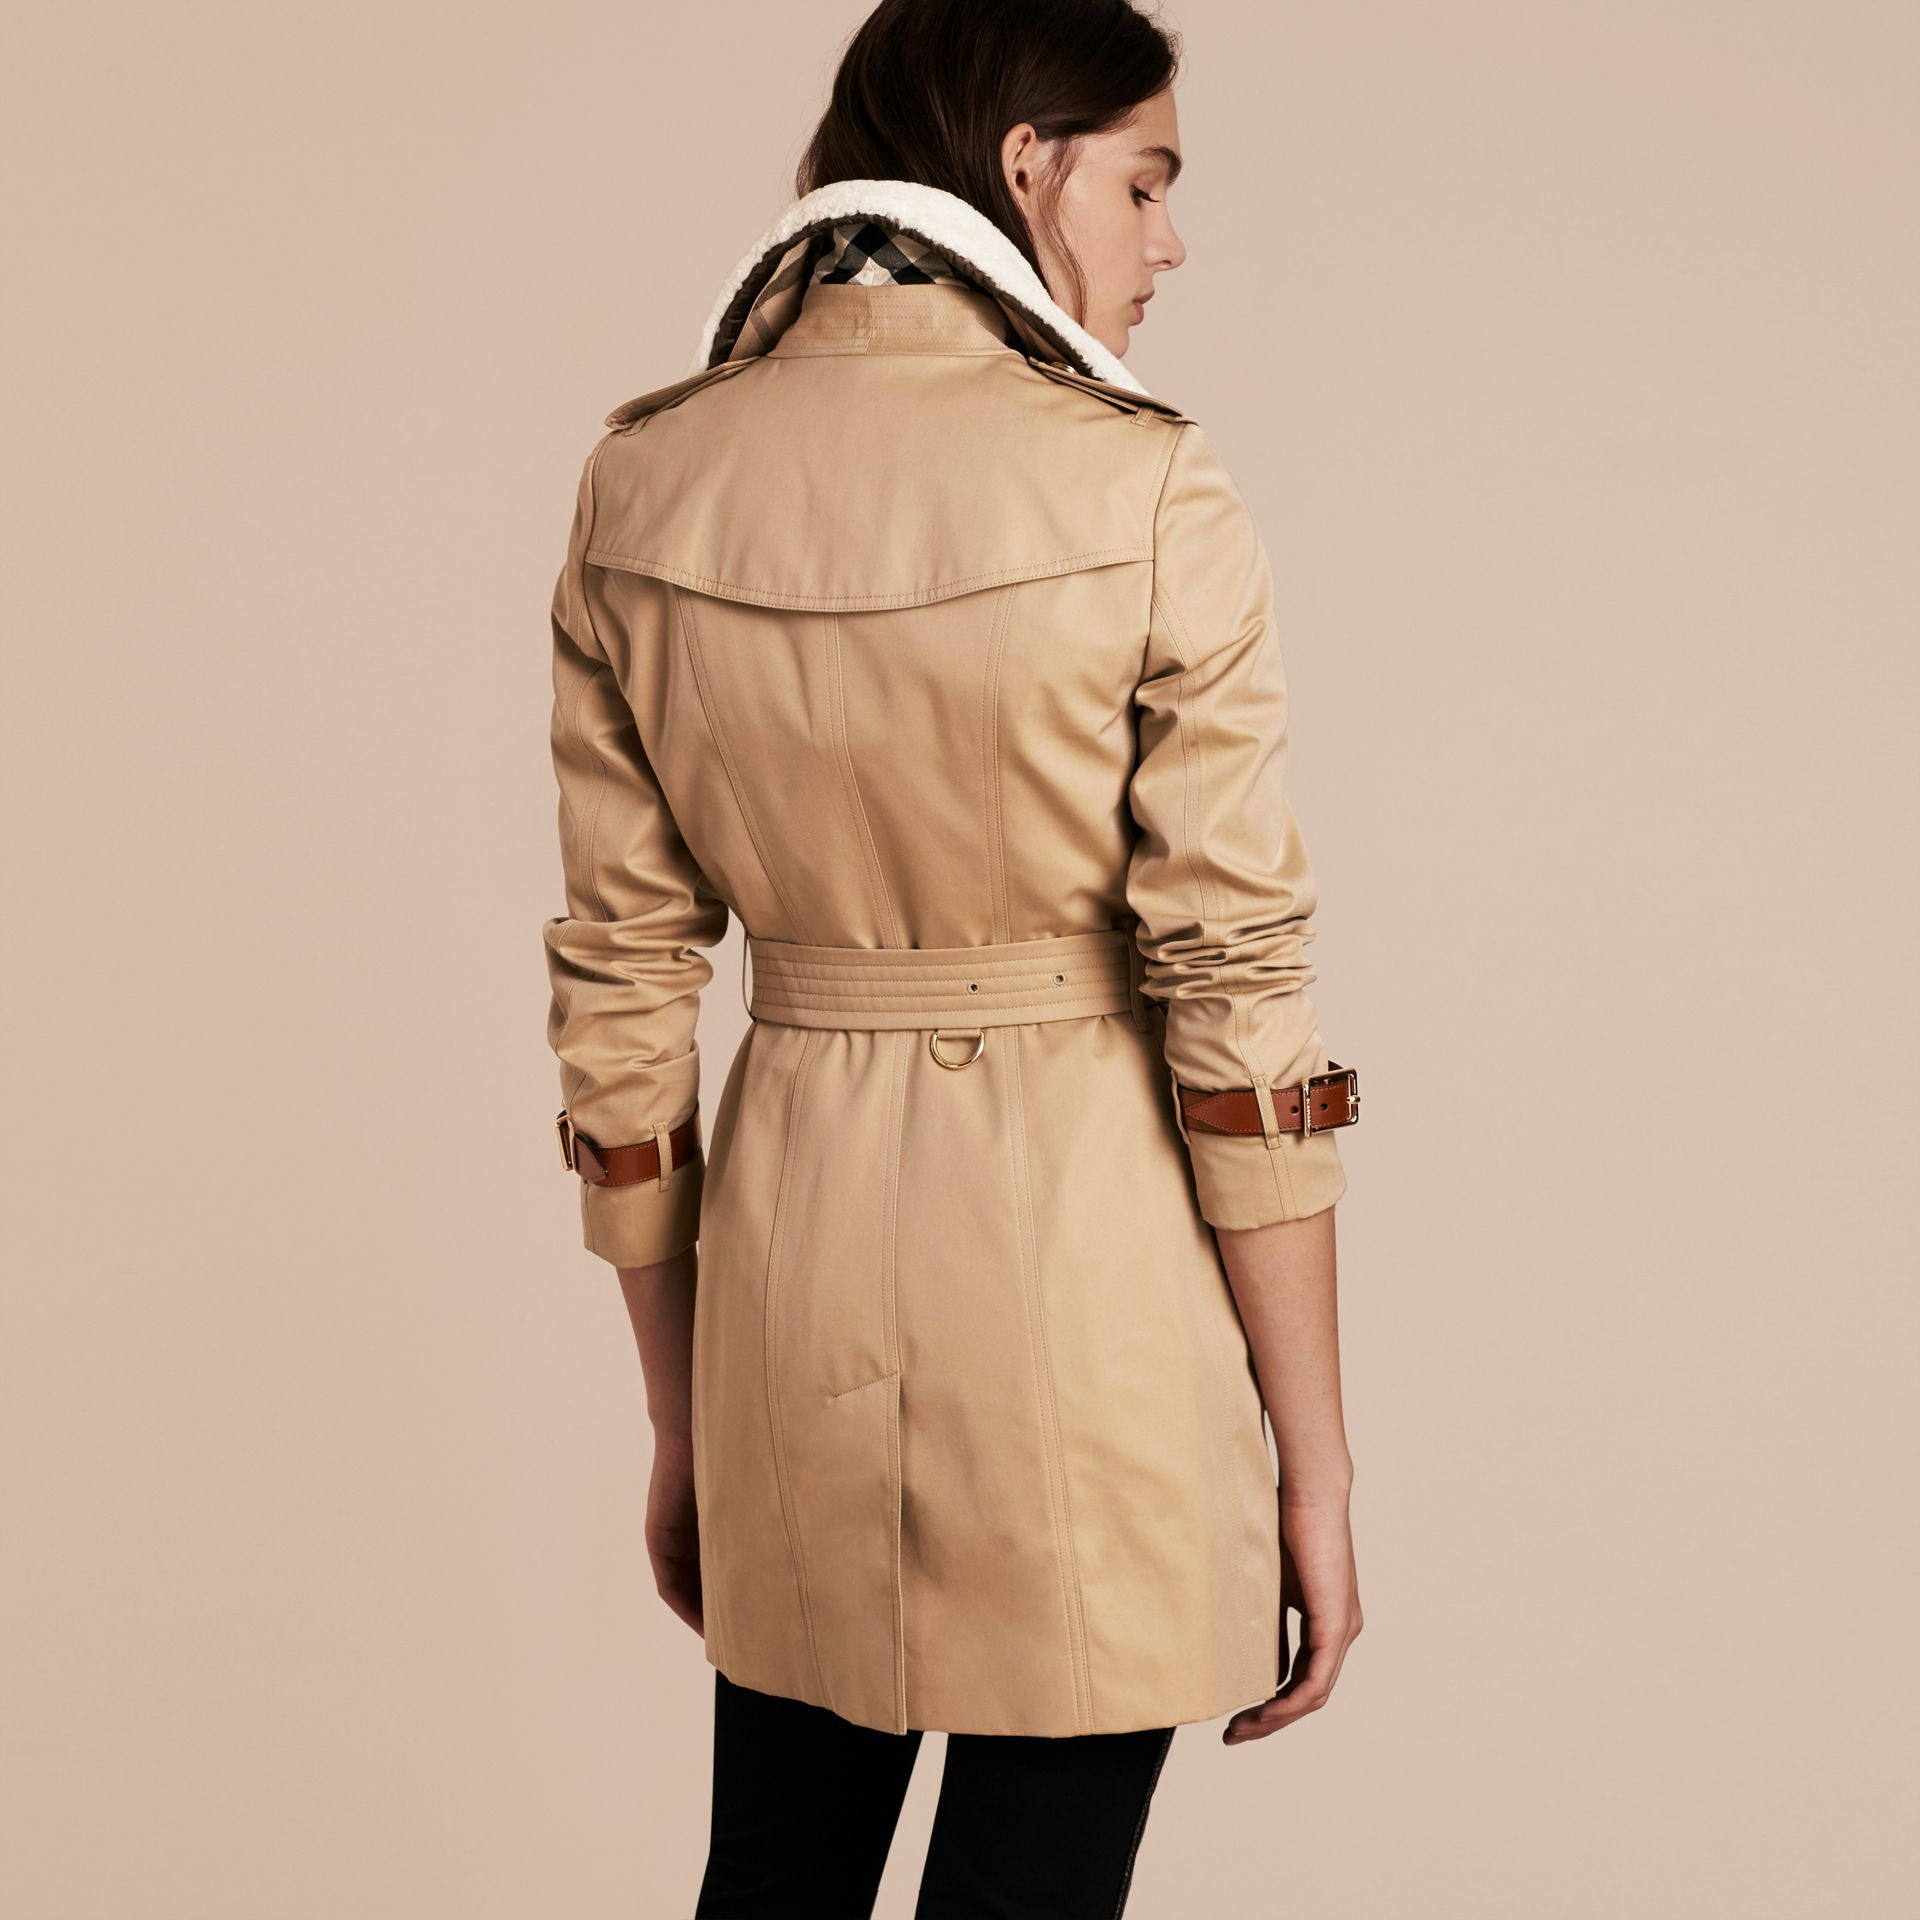 Honey Leather Trim Trench Coat with Detachable Shearling Collar - gallery image 3